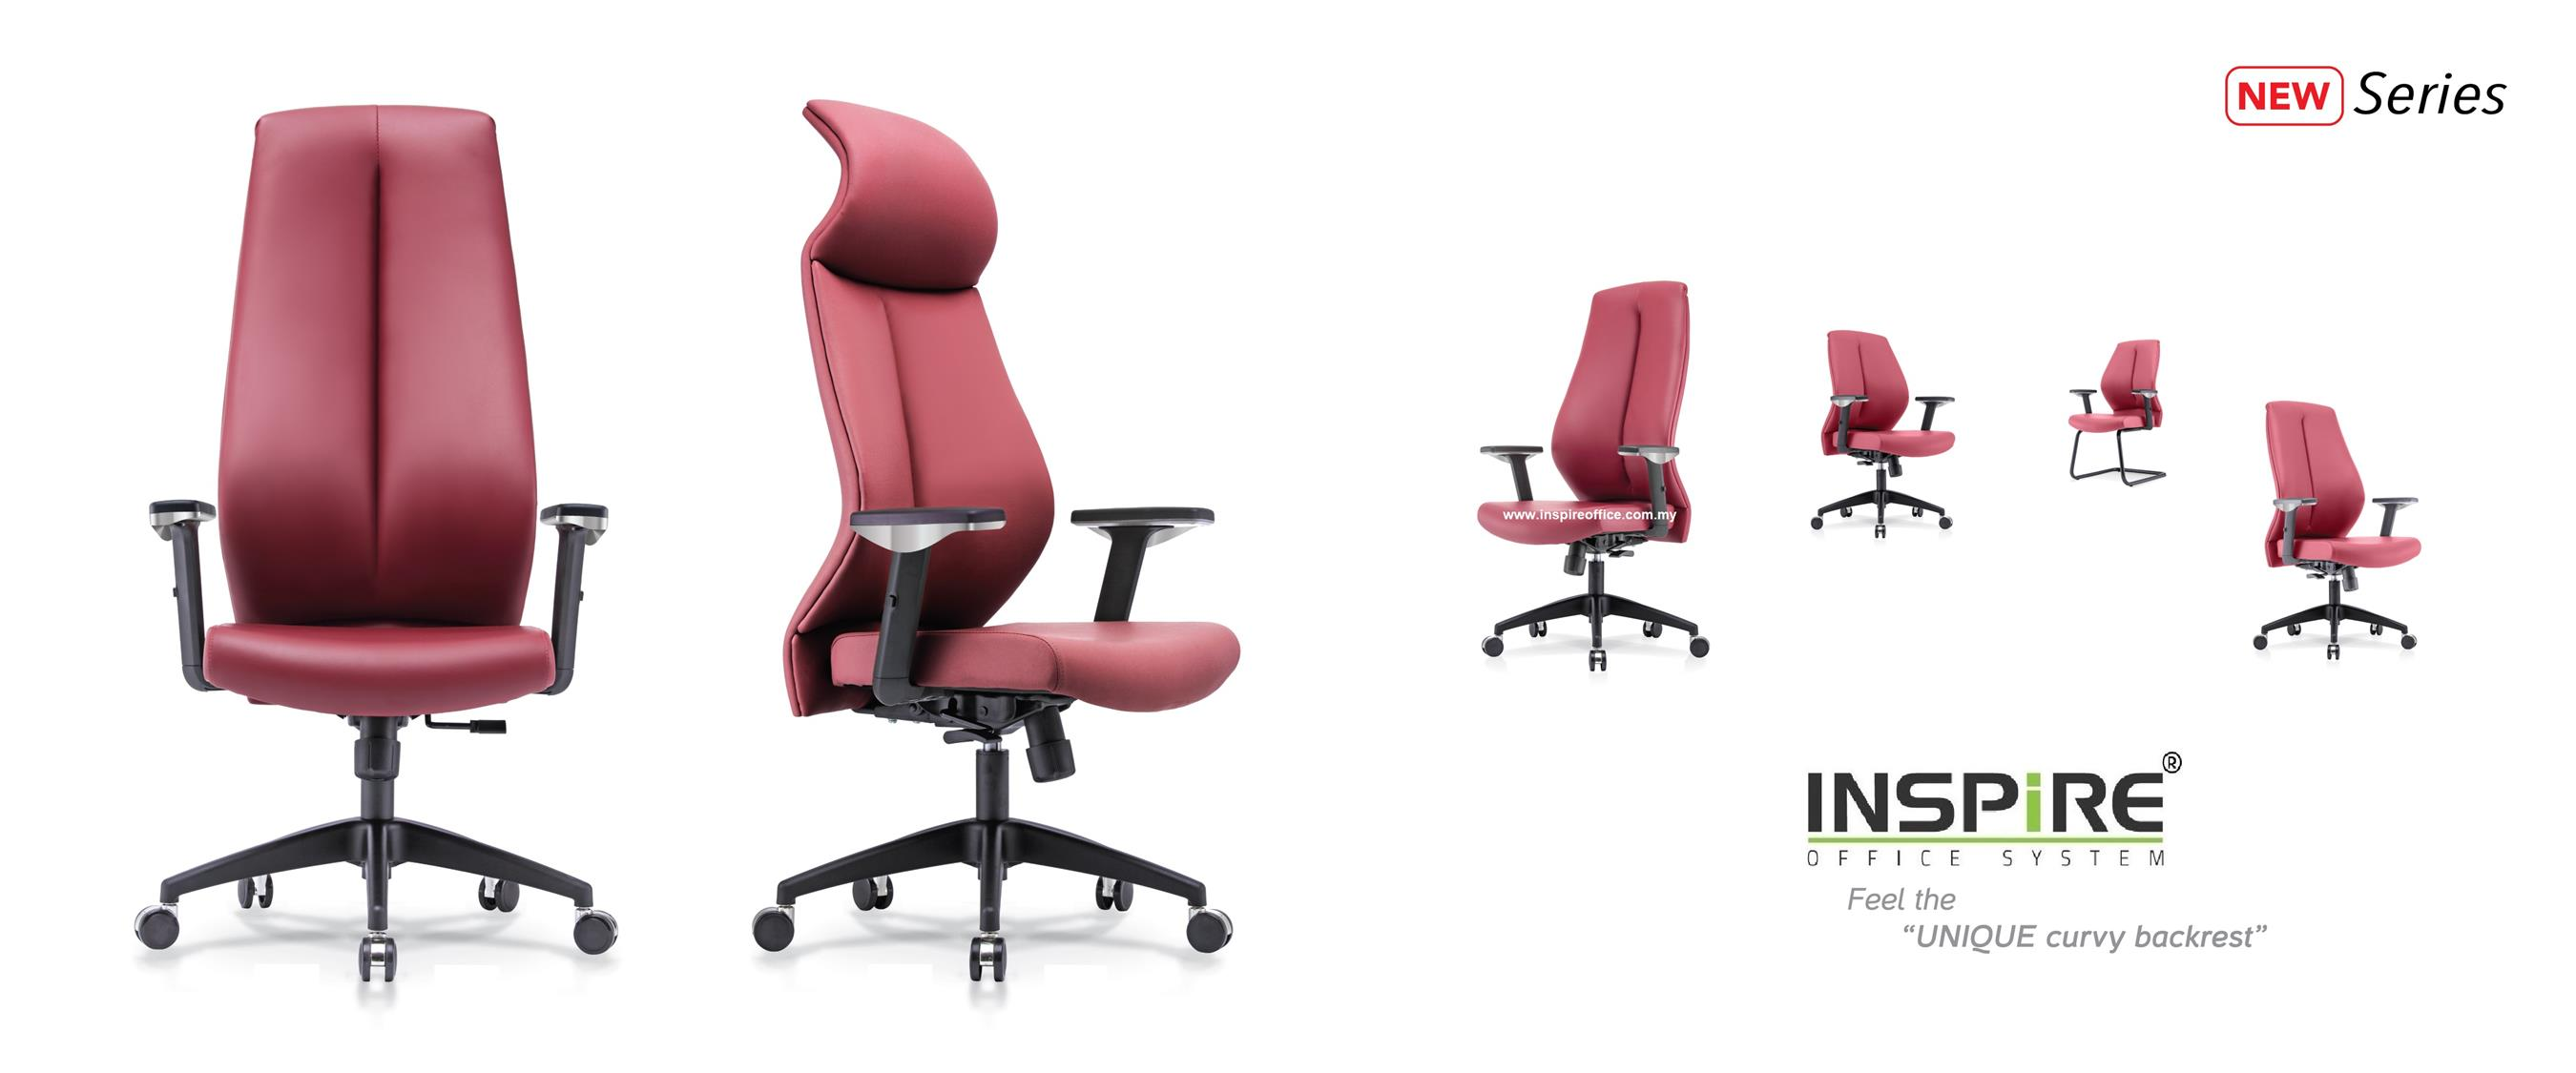 CELOSIA INS-1HB High Back PU/Fabric Office Chair